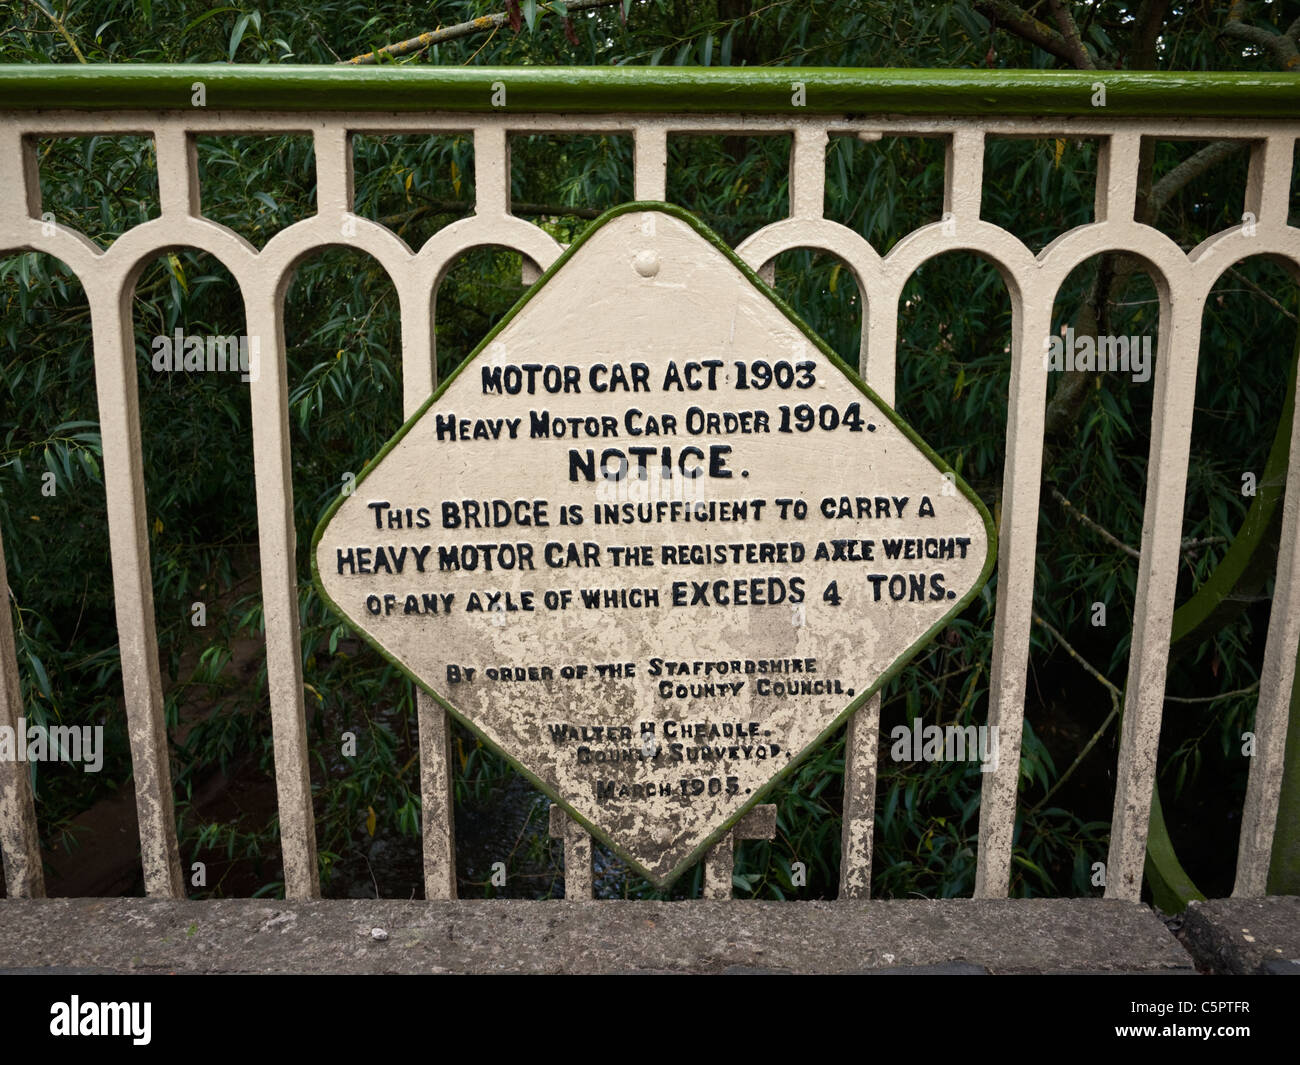 Old road sign from the Motor Car Act 1903 on a road bridge in the South Staffordshire village of Trysull - Stock Image